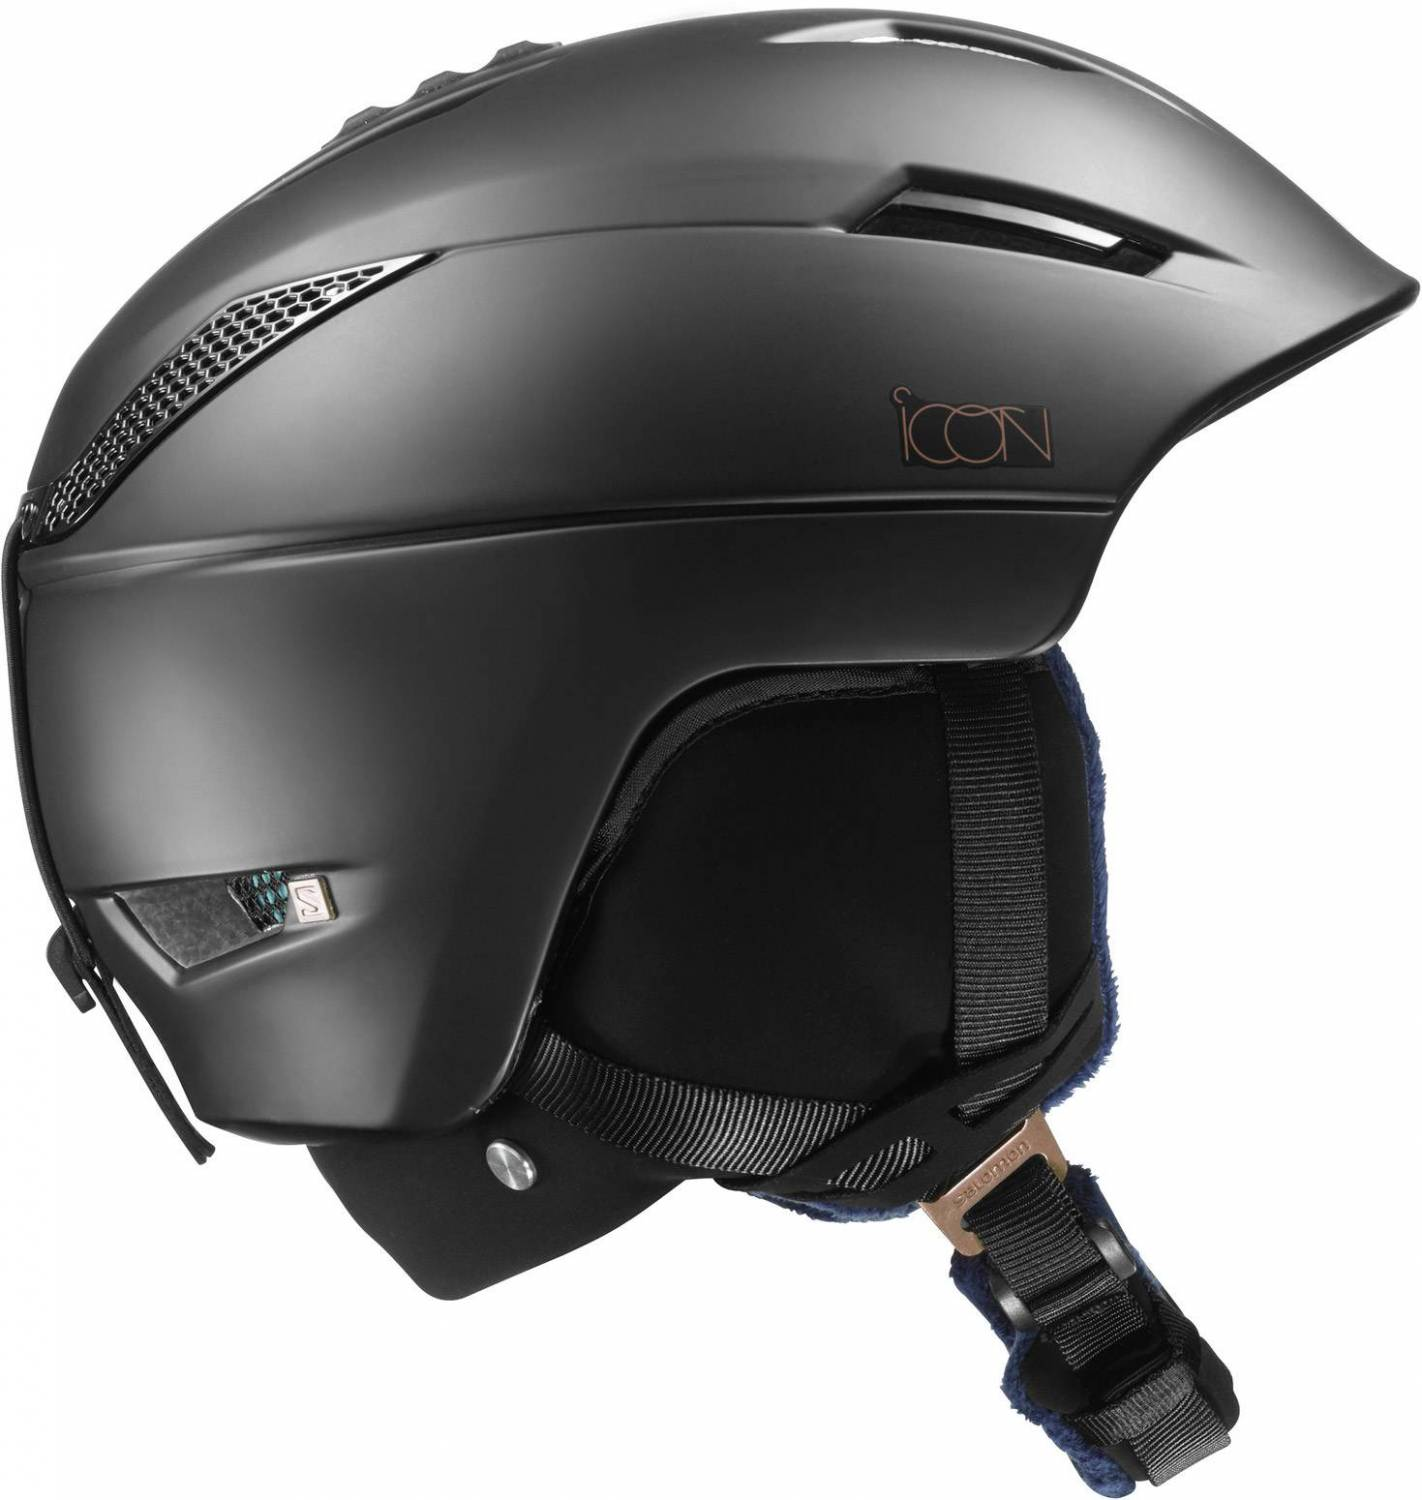 Salomon Icon Custom Air Skihelm (Größe: 53-56 cm, black) Sale Angebote Welzow